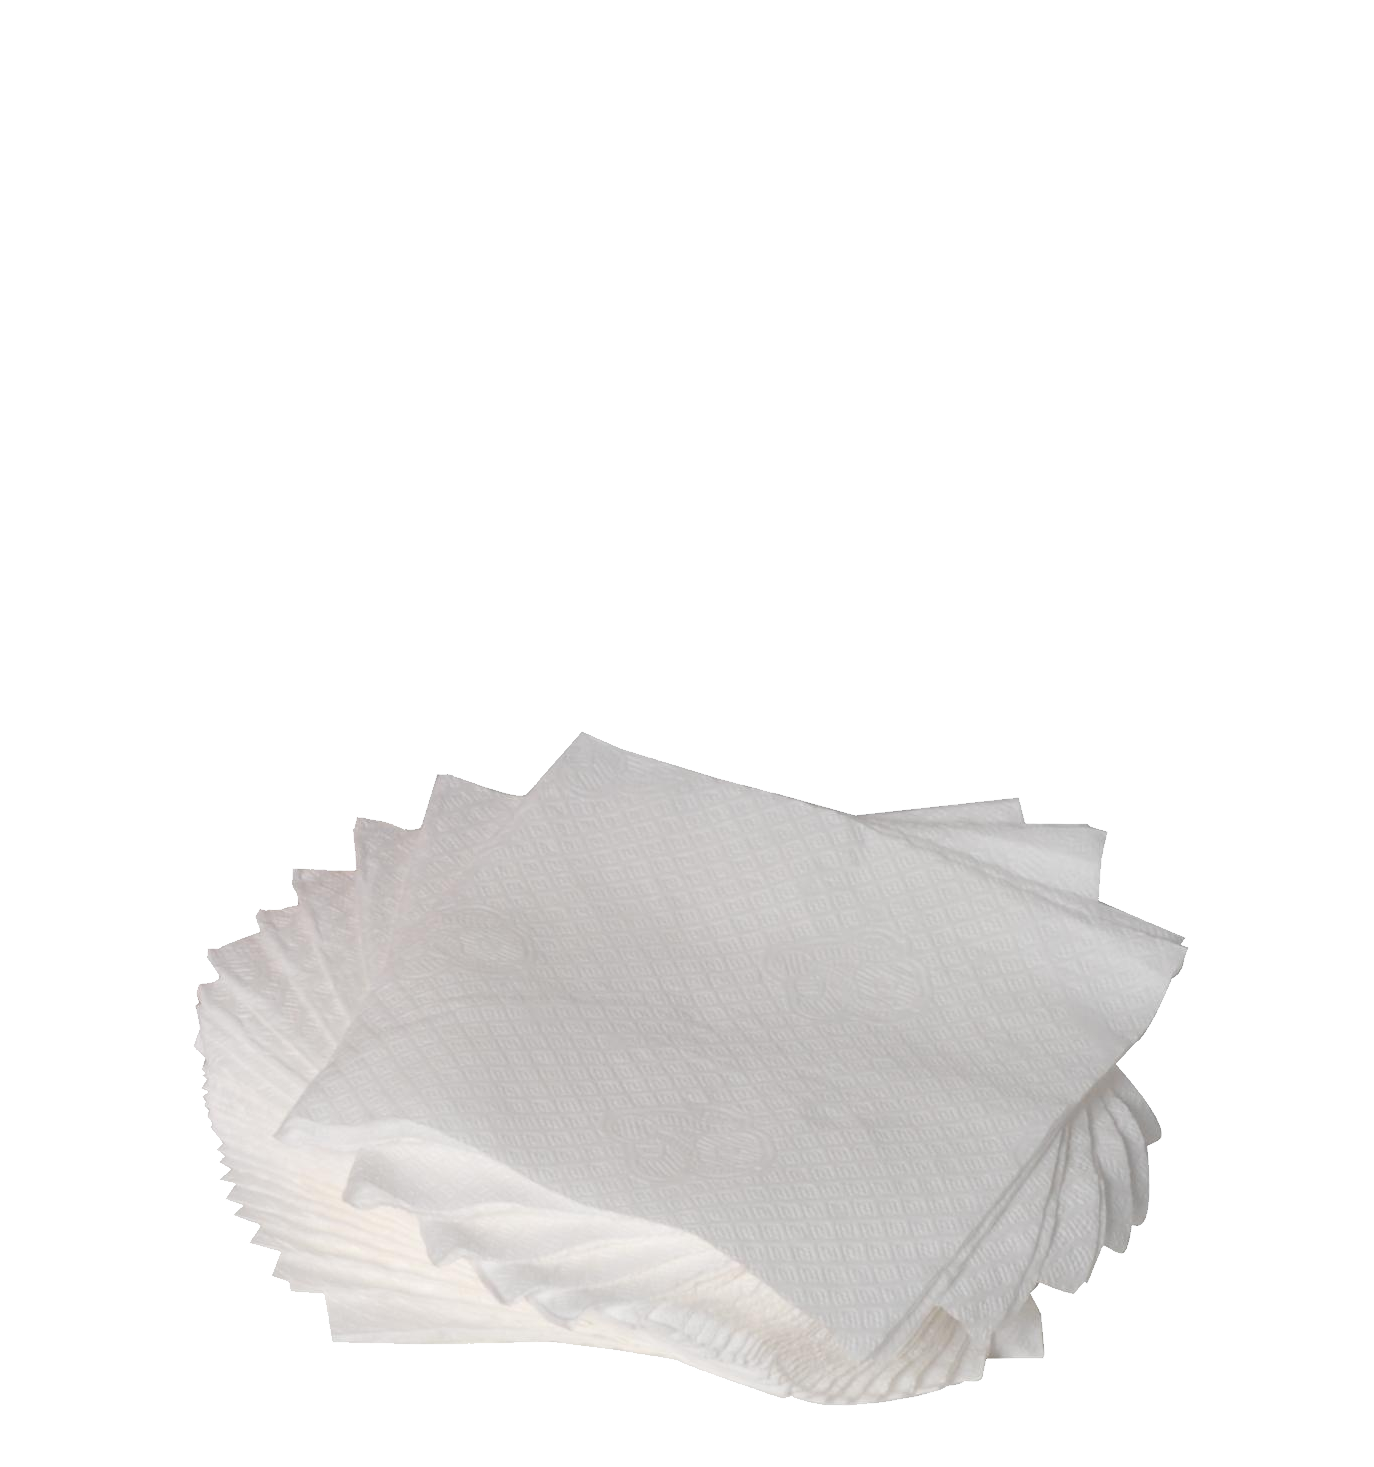 Napkin clipart transparent background. Png image with